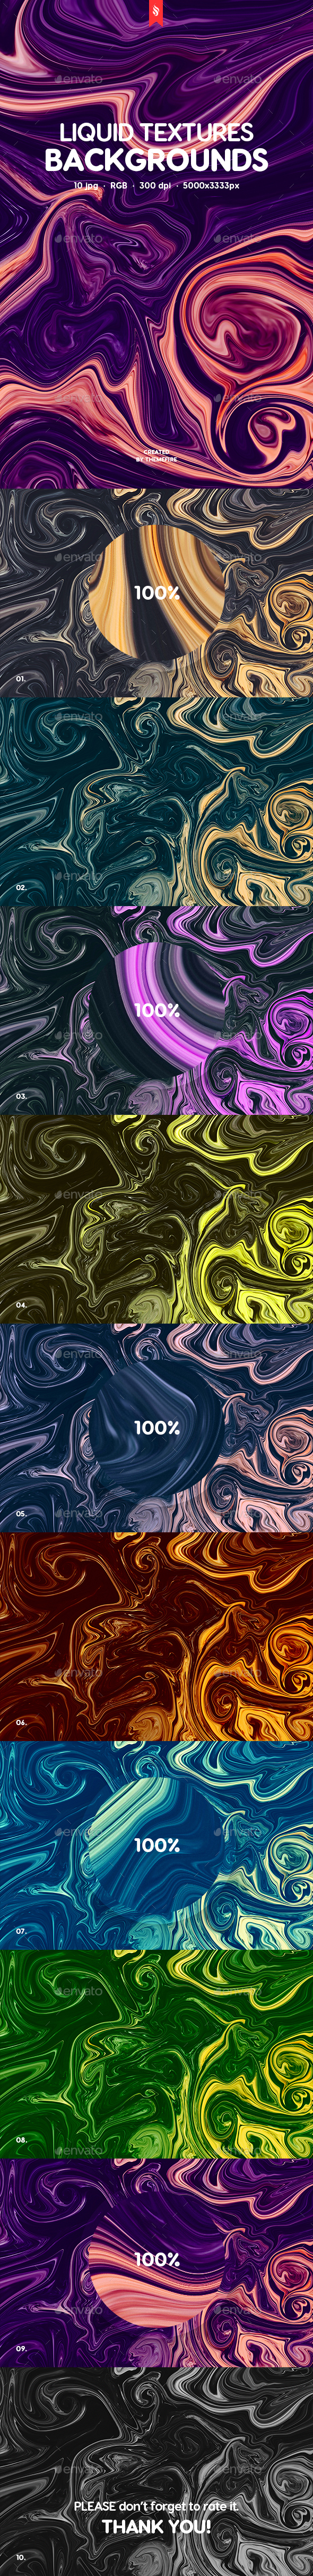 Liquid Backgrounds - Abstract Backgrounds